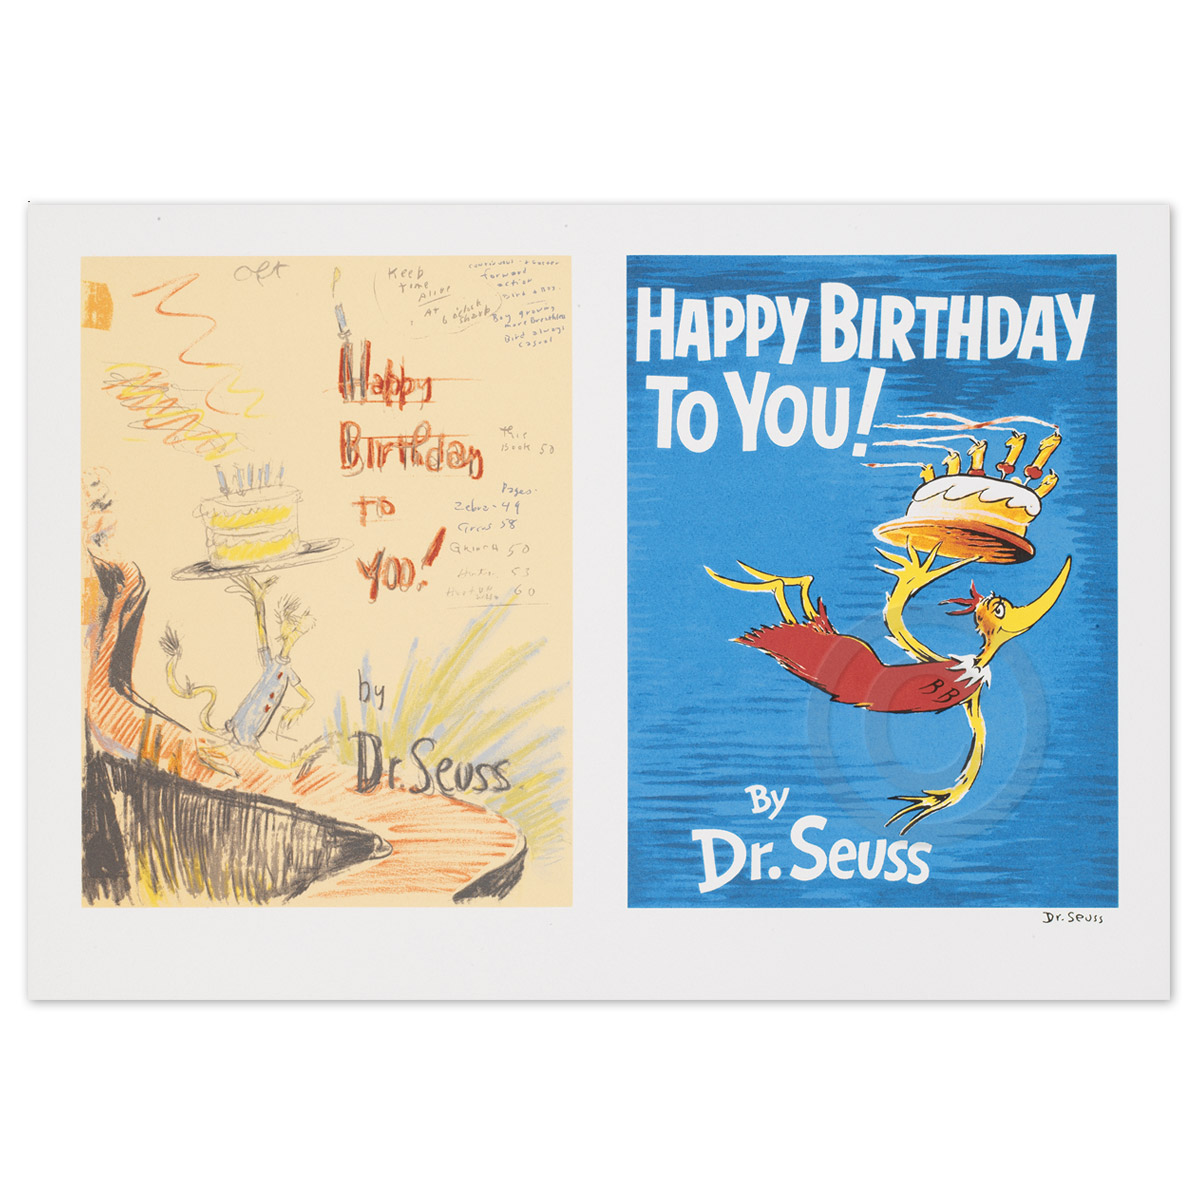 Happy Birthday To You Diptych And Single The Art Of Dr Seuss Collection Published By Chaseart Companies